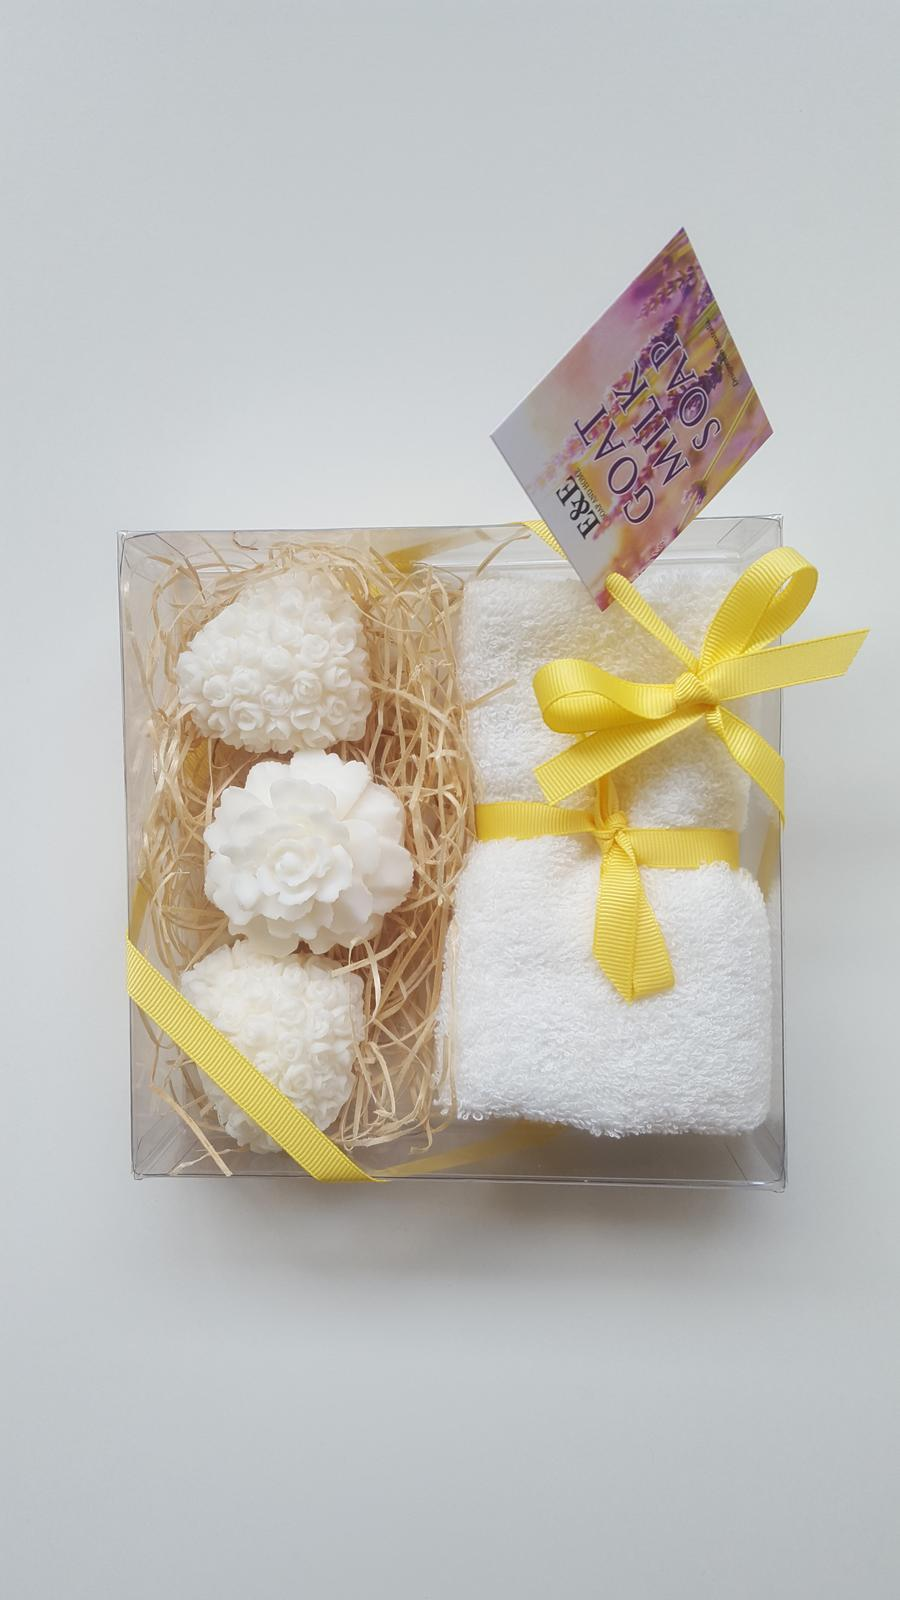 Soap and towel gift set